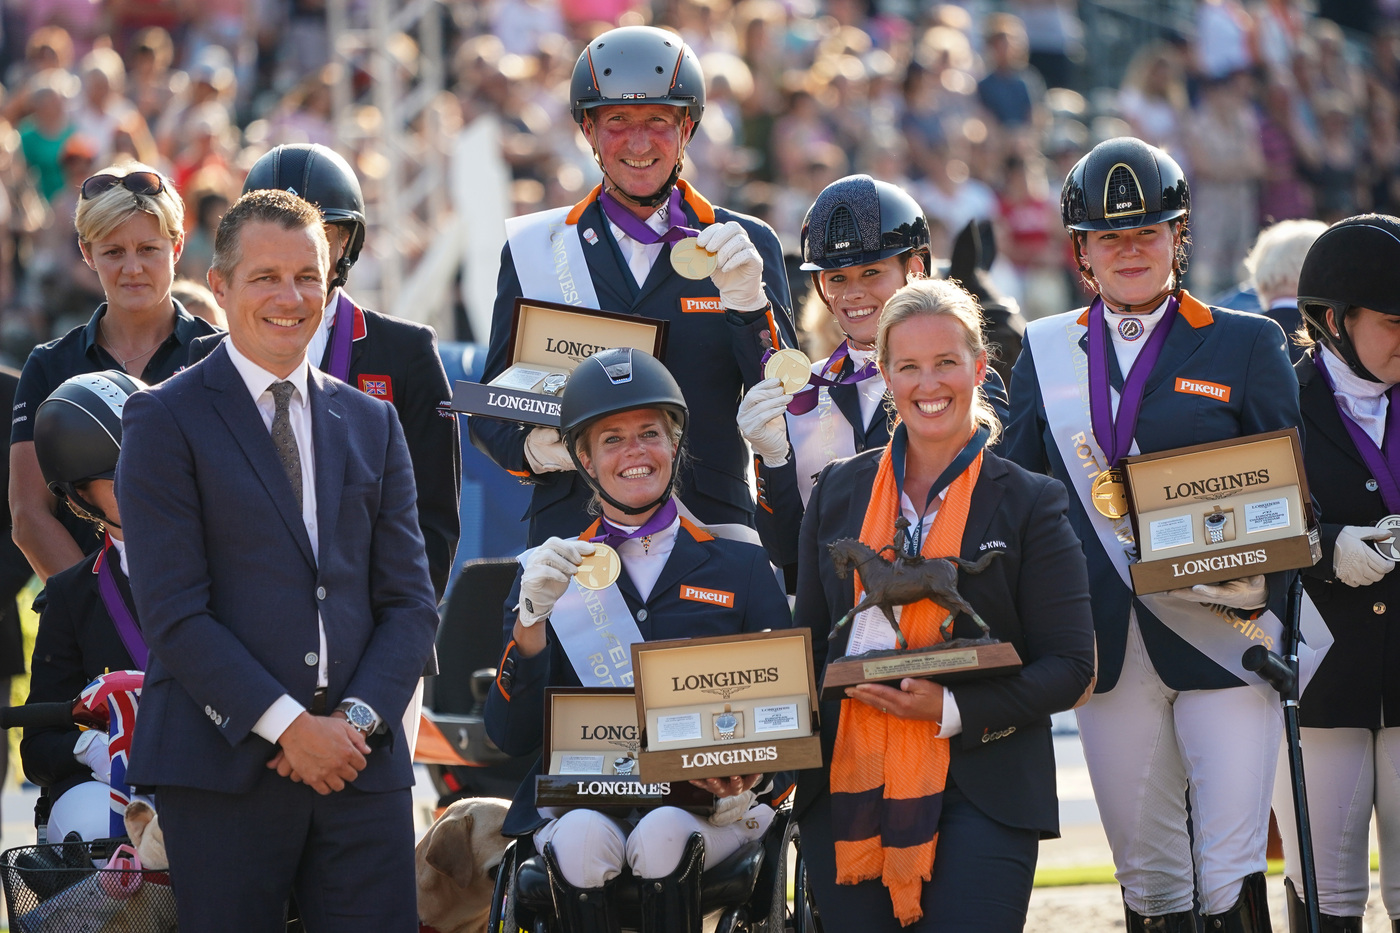 Longines Show Jumping Event: One week of captivating competitions and exceptional performances at the Longines FEI European Championships 2019 8